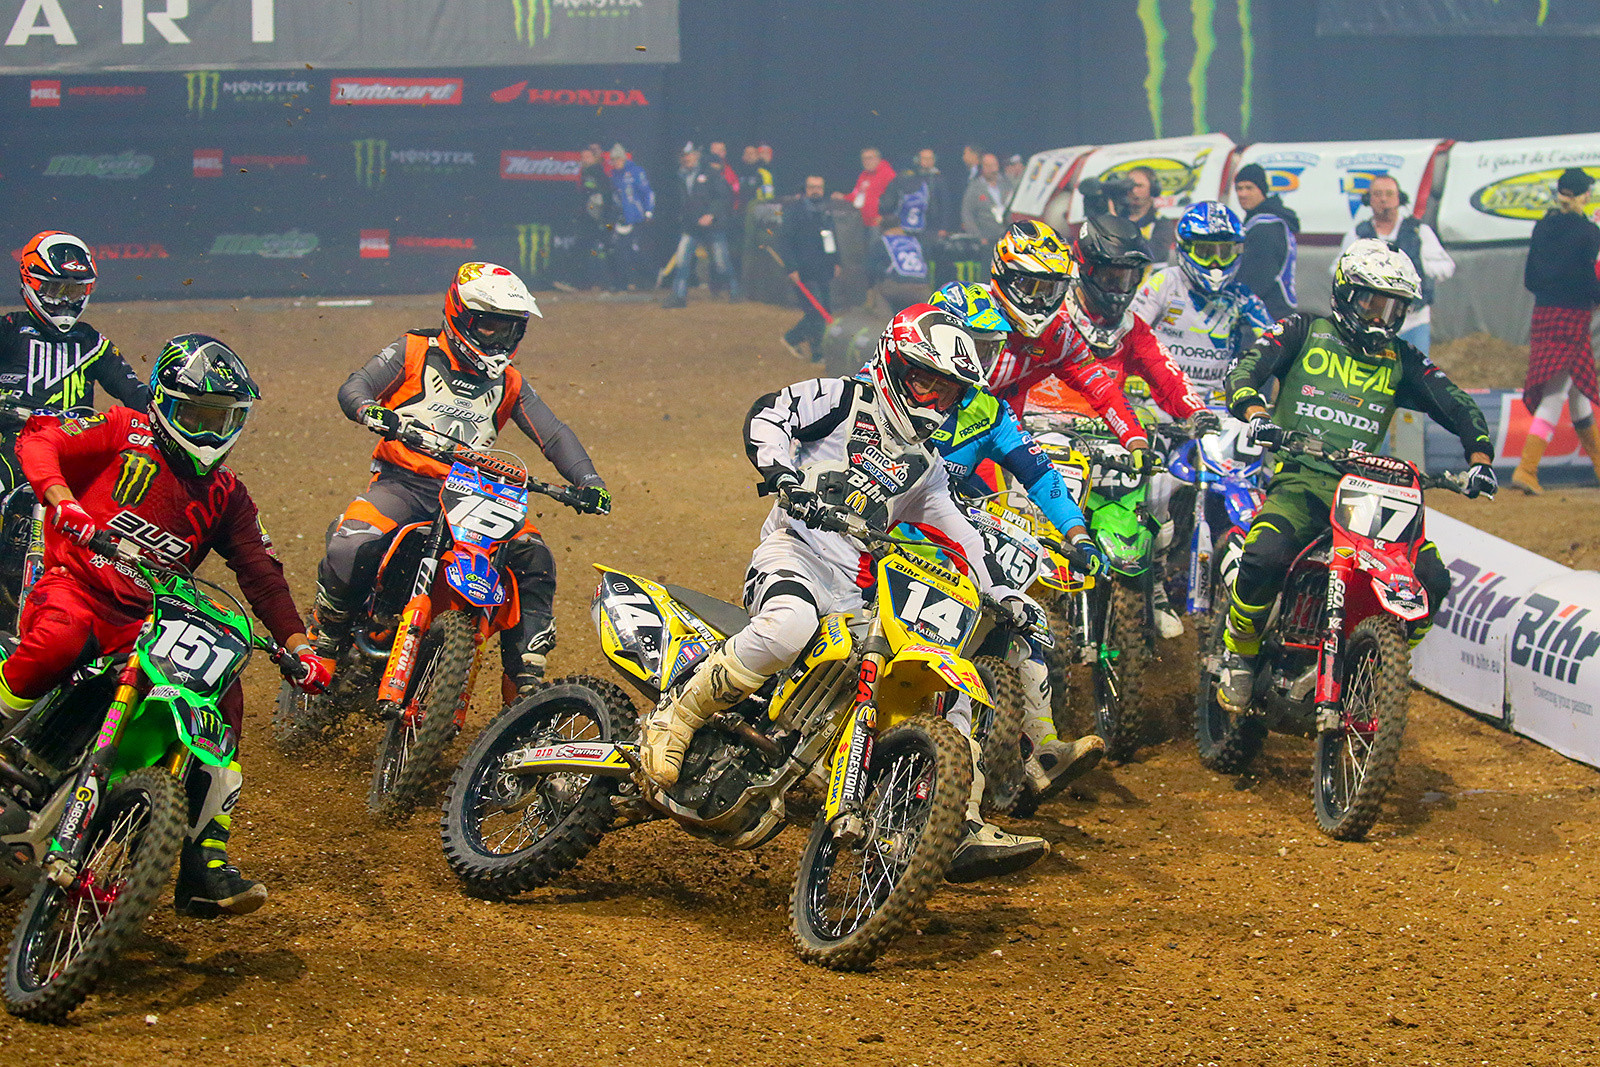 250 Heat Race Two - Photo Gallery: Paris-Lille Supercross, Day 2 - Motocross Pictures - Vital MX